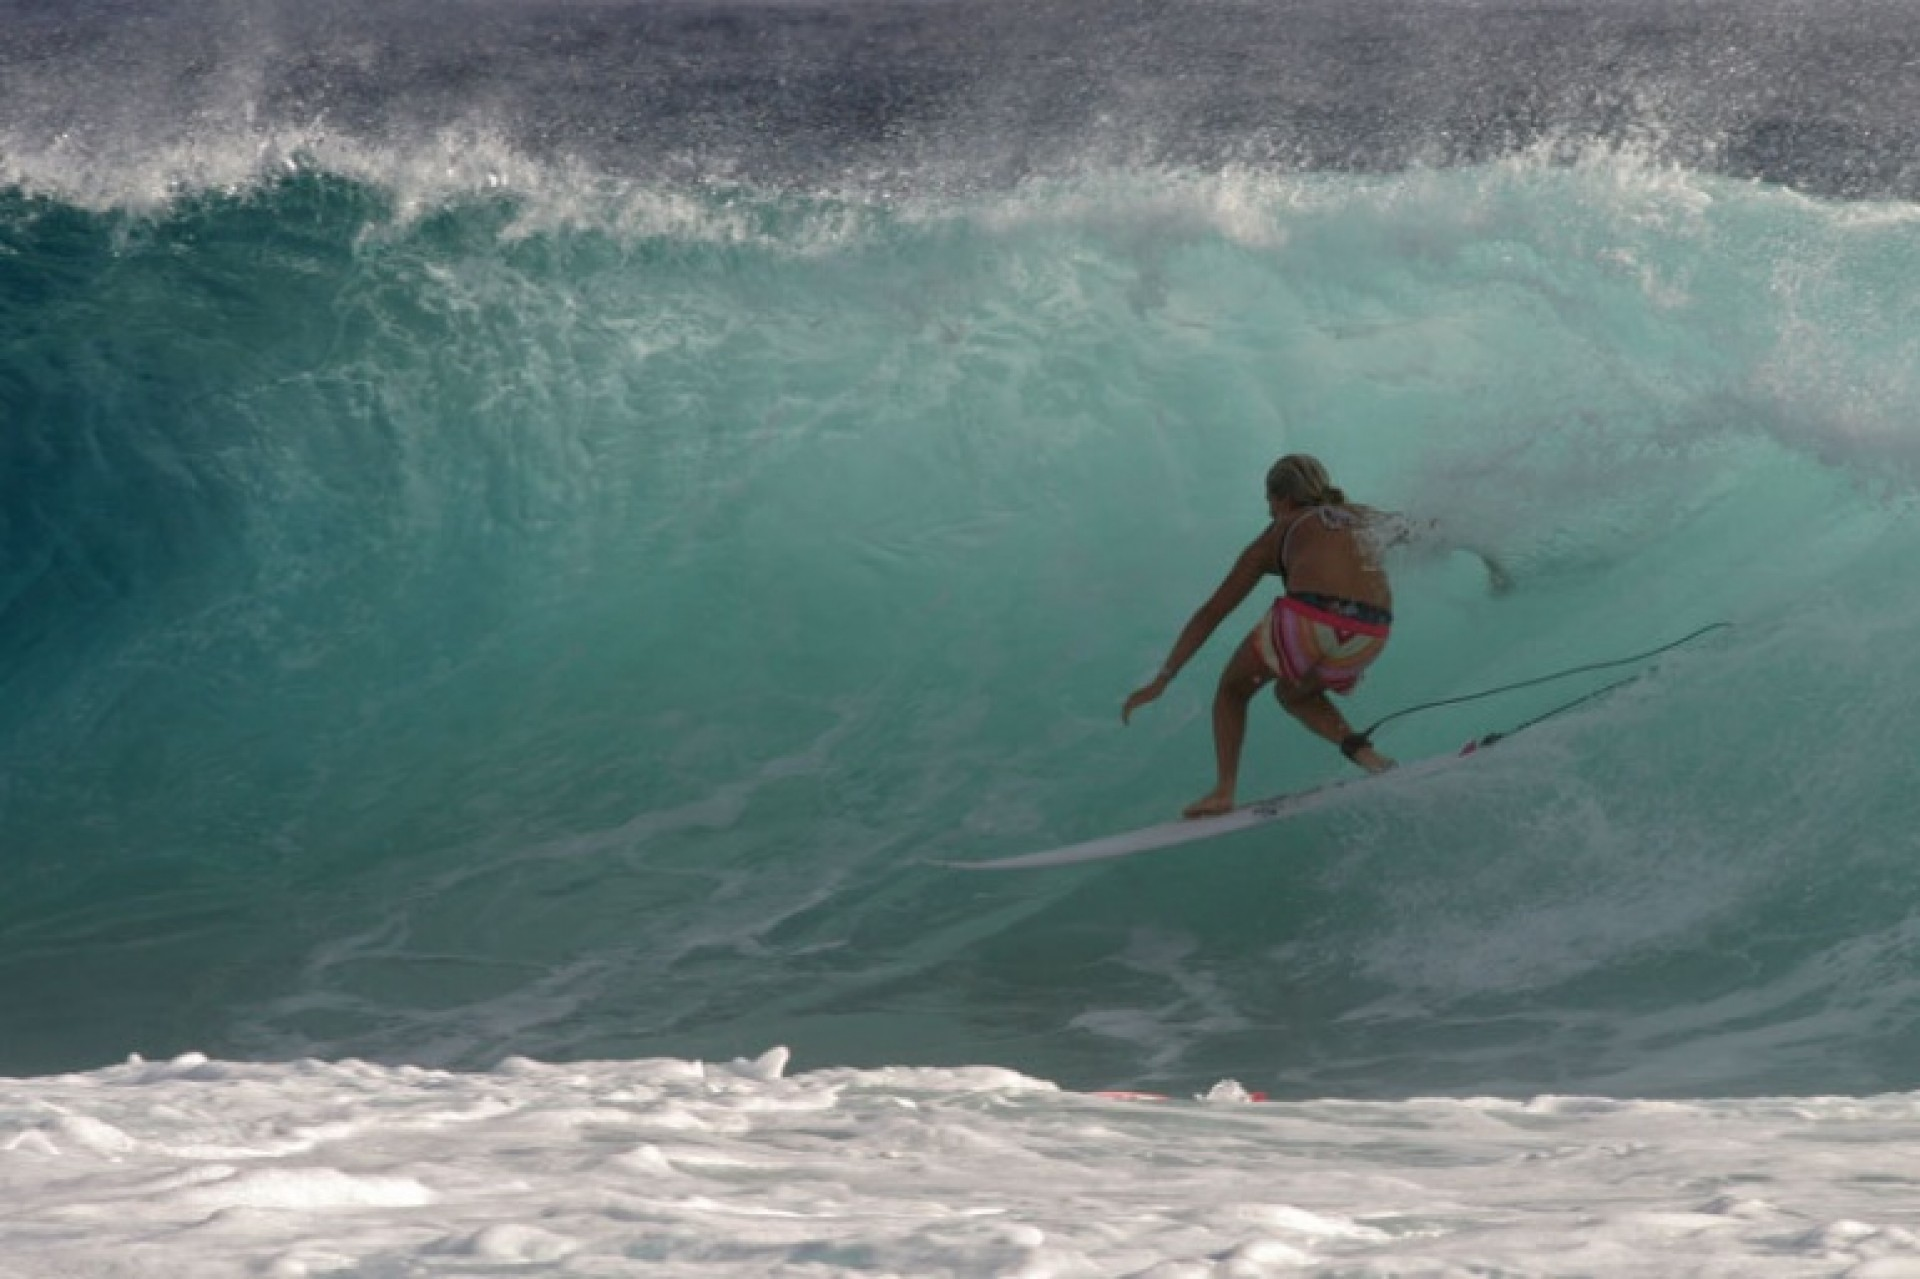 Captain Kid's photo of Snapper Rocks